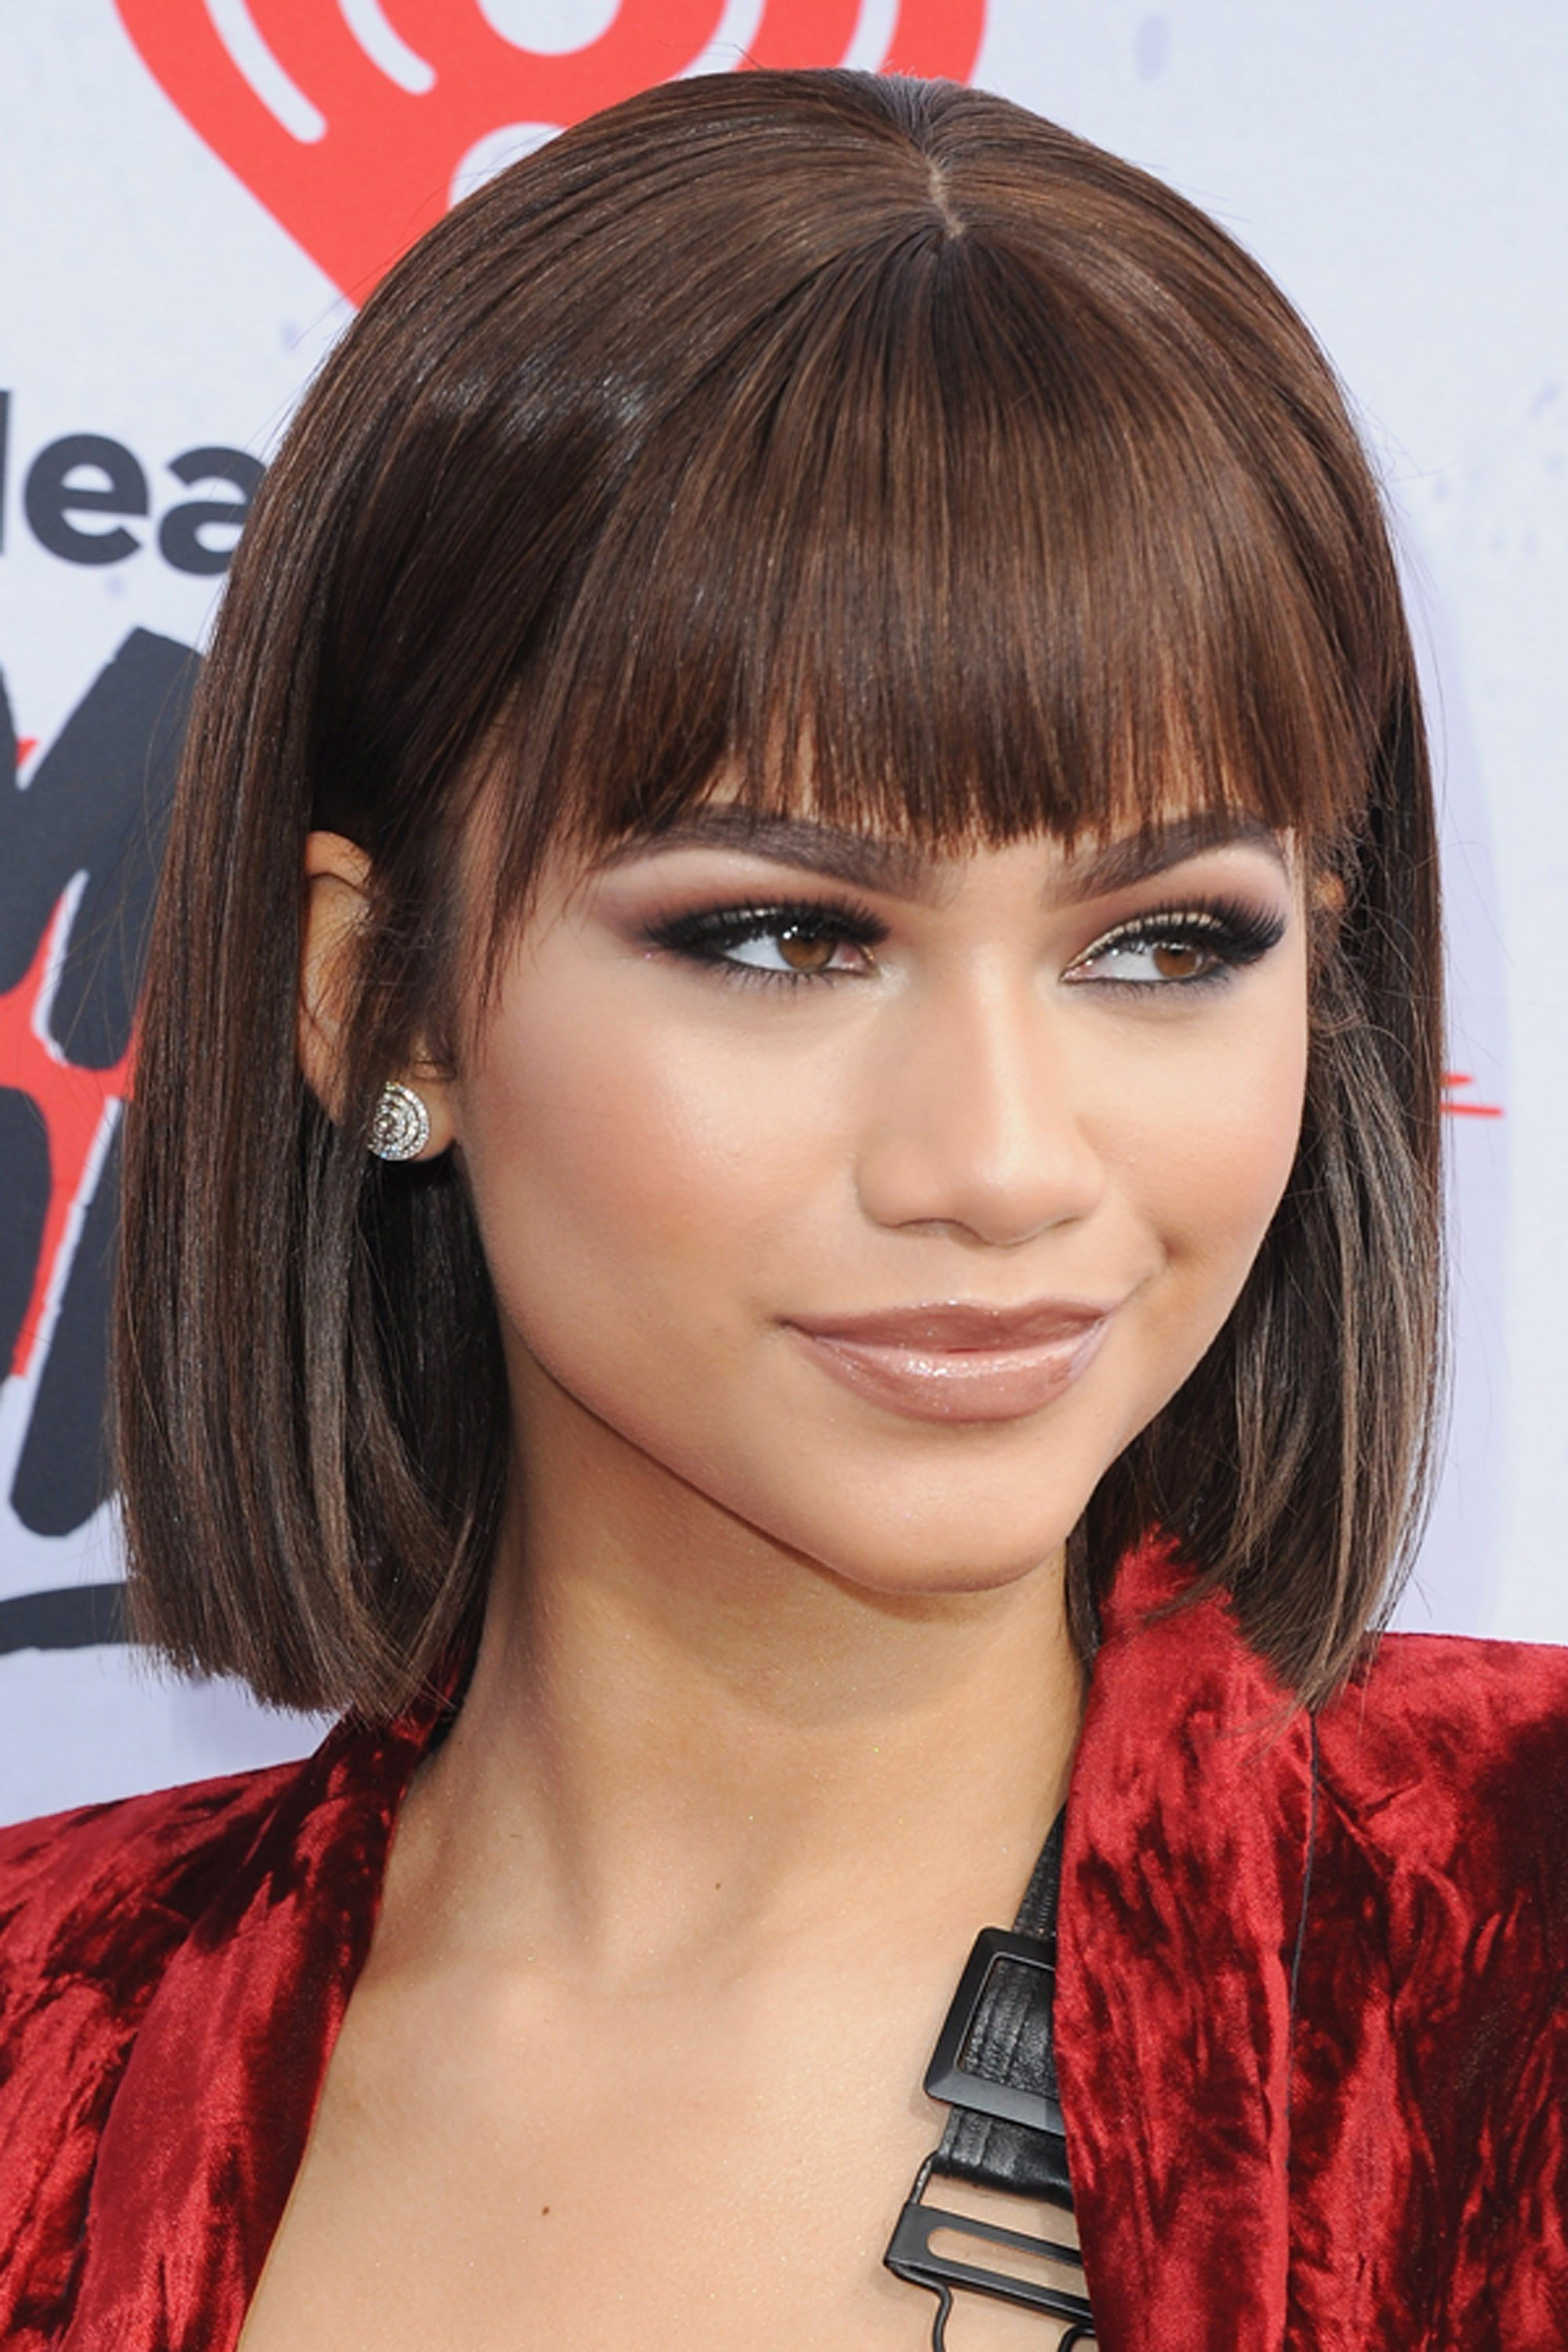 The Best 15 Long Bob Haircuts And Hairstyles For An Attractive Look Pictures